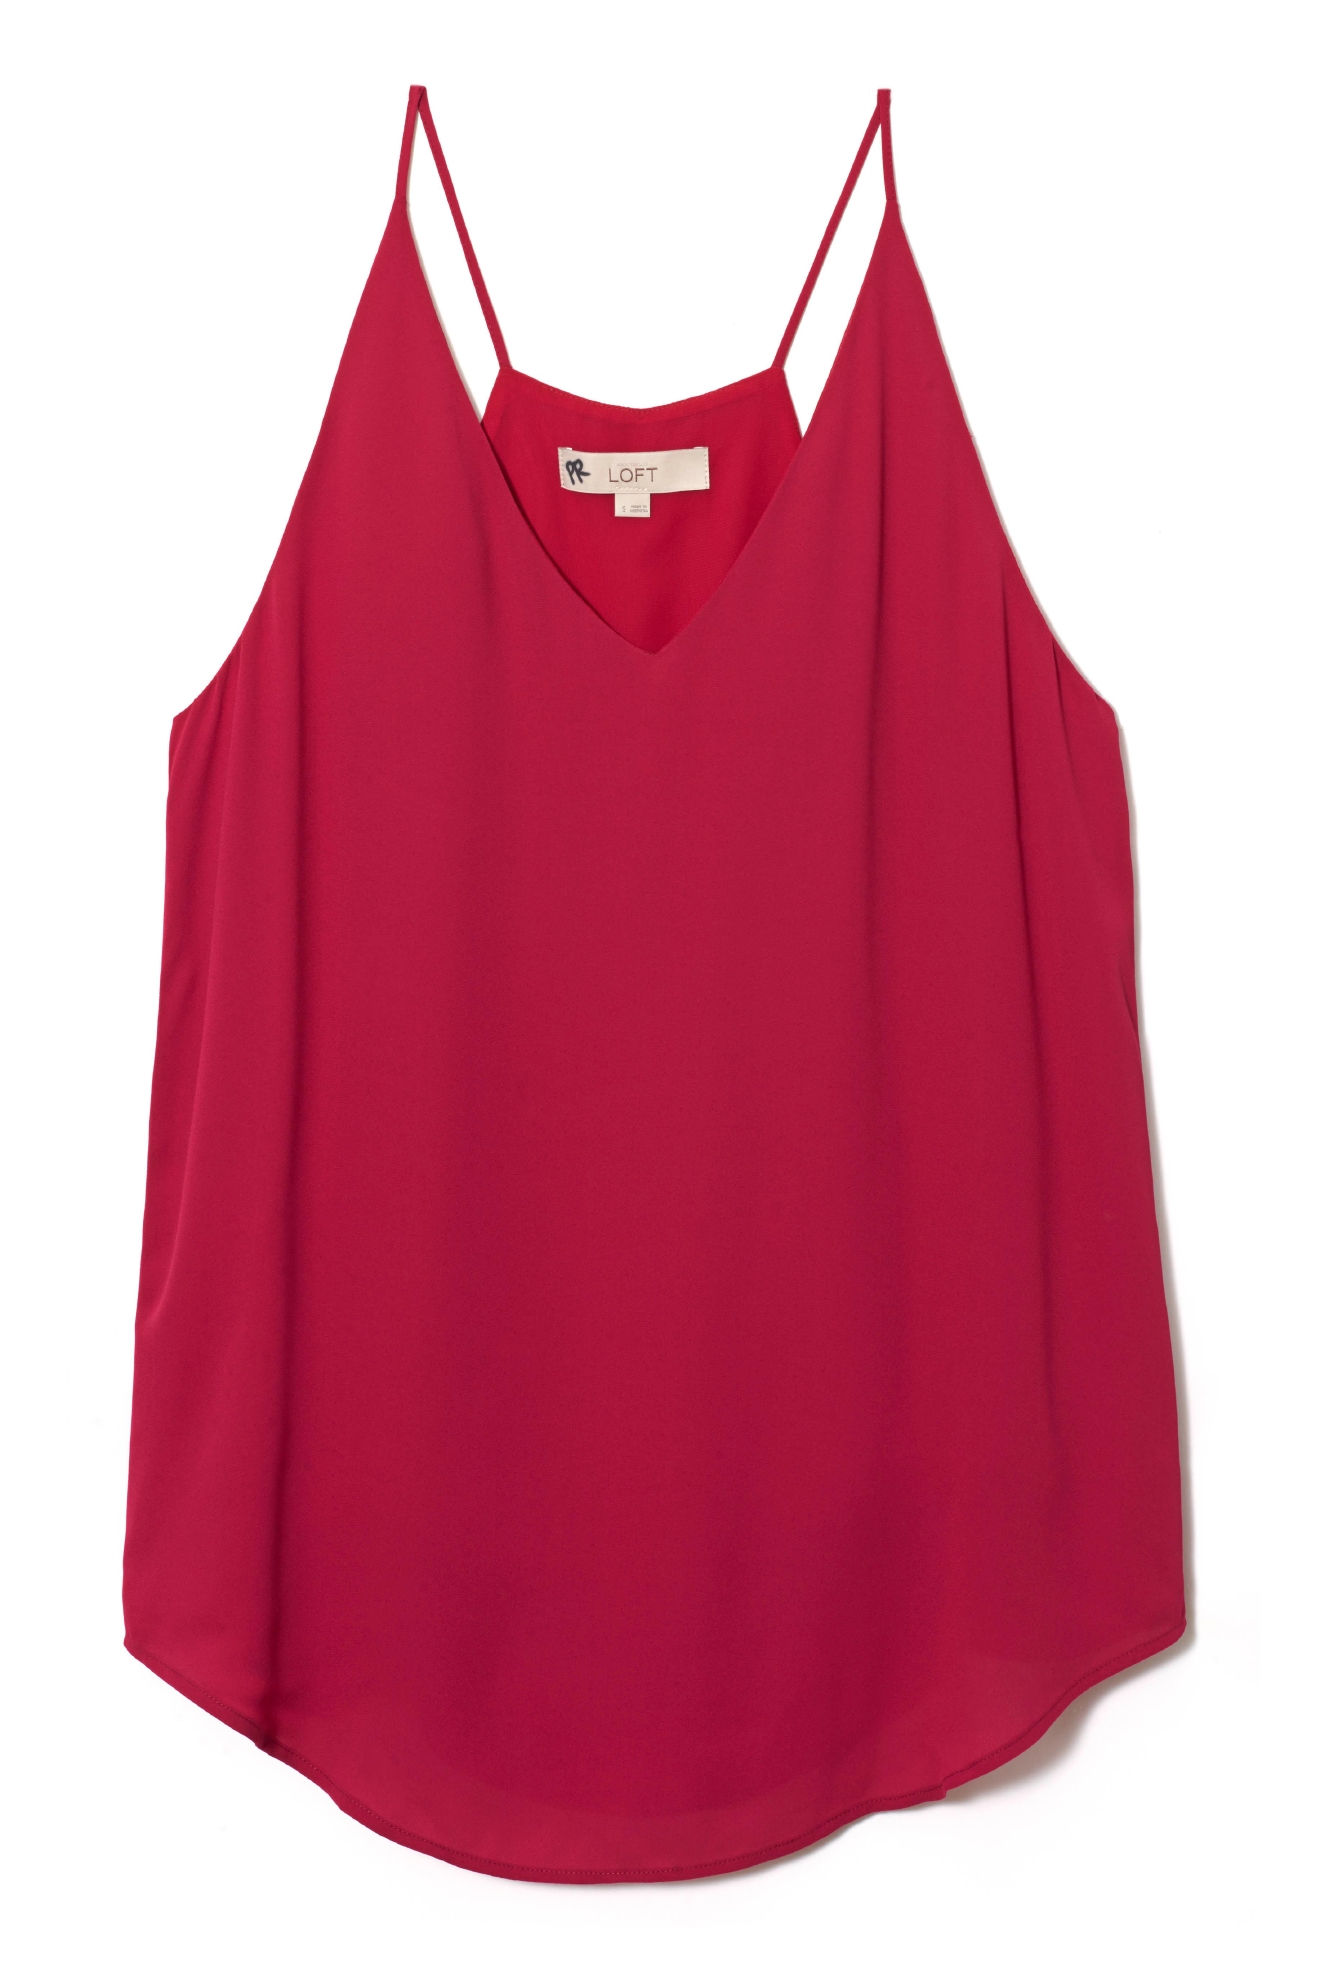 LOFT Red V-Neck Tank Top $39.50 (LOFT)